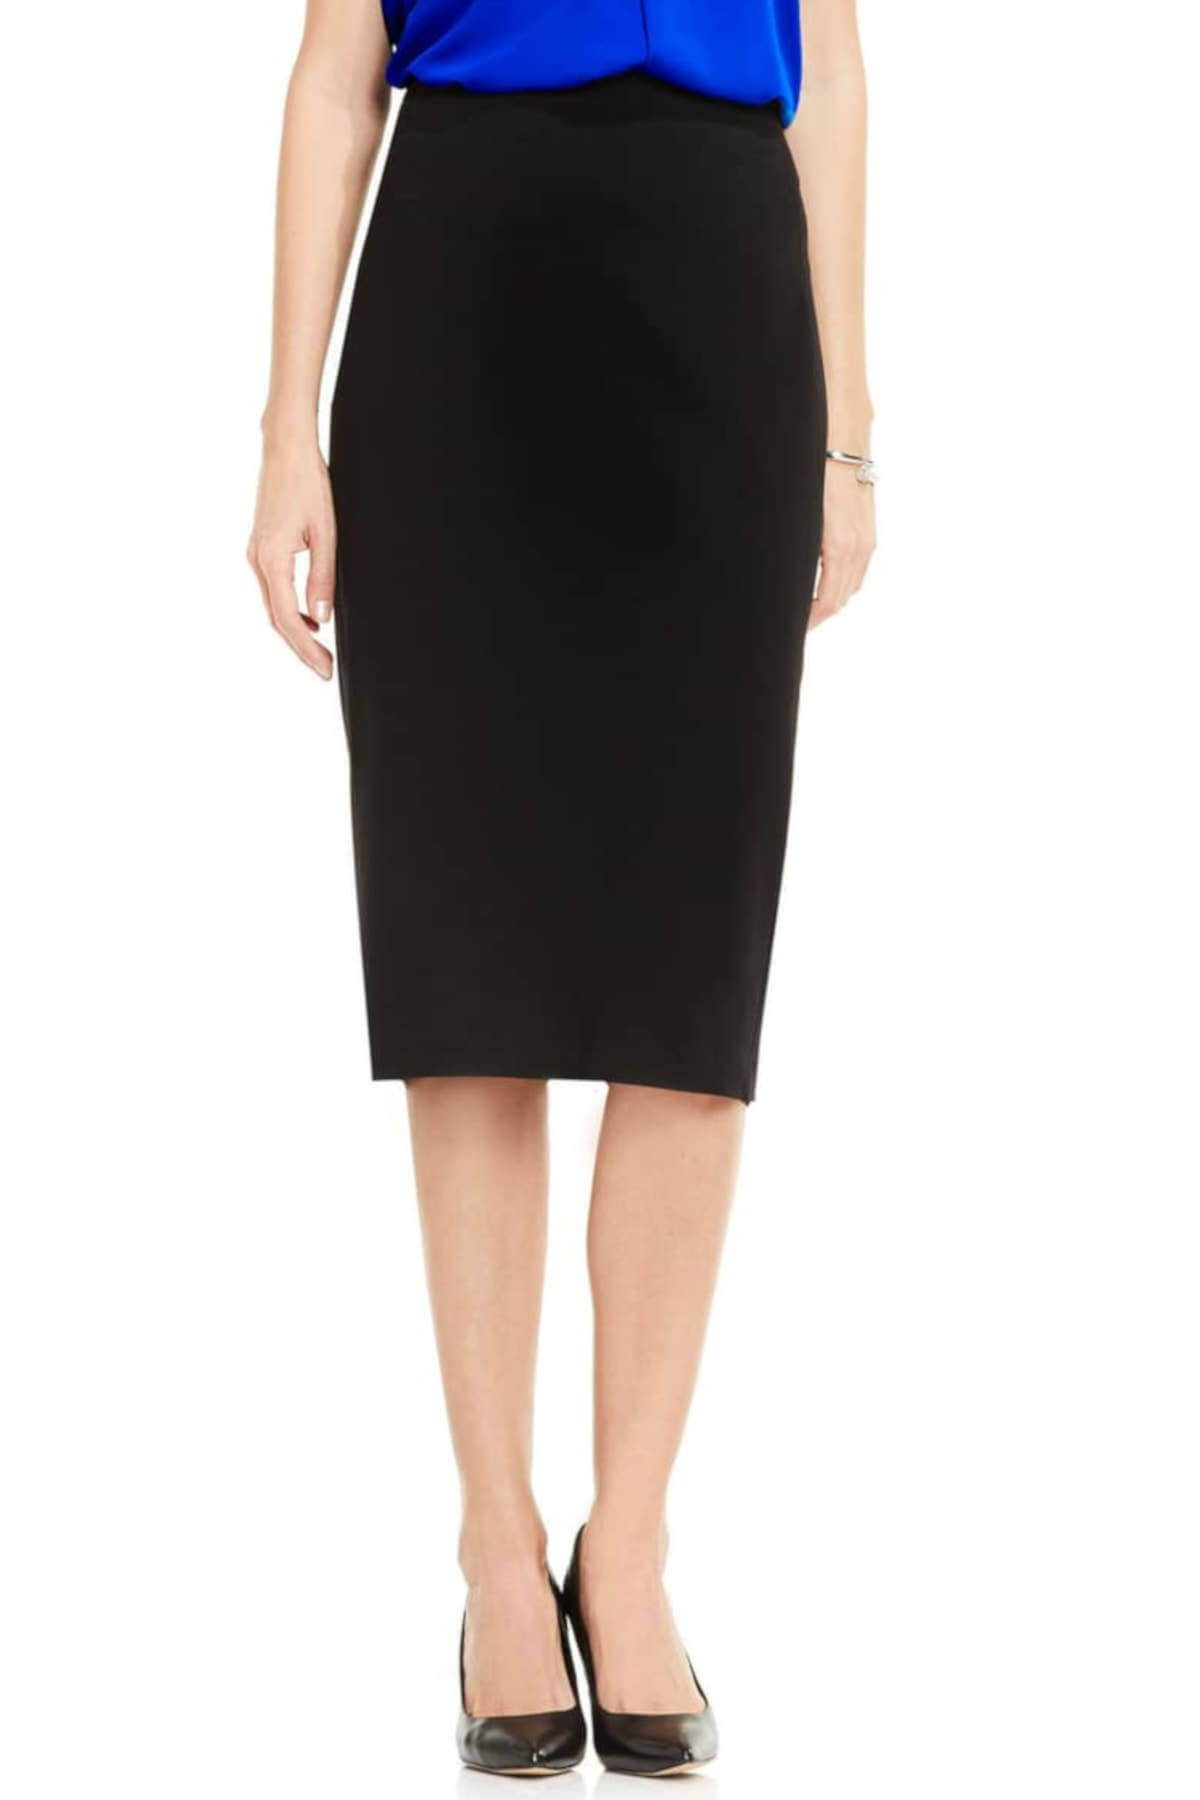 Black Vince Camuto Pull On Midi Pencil Skirts Business Casual for Women